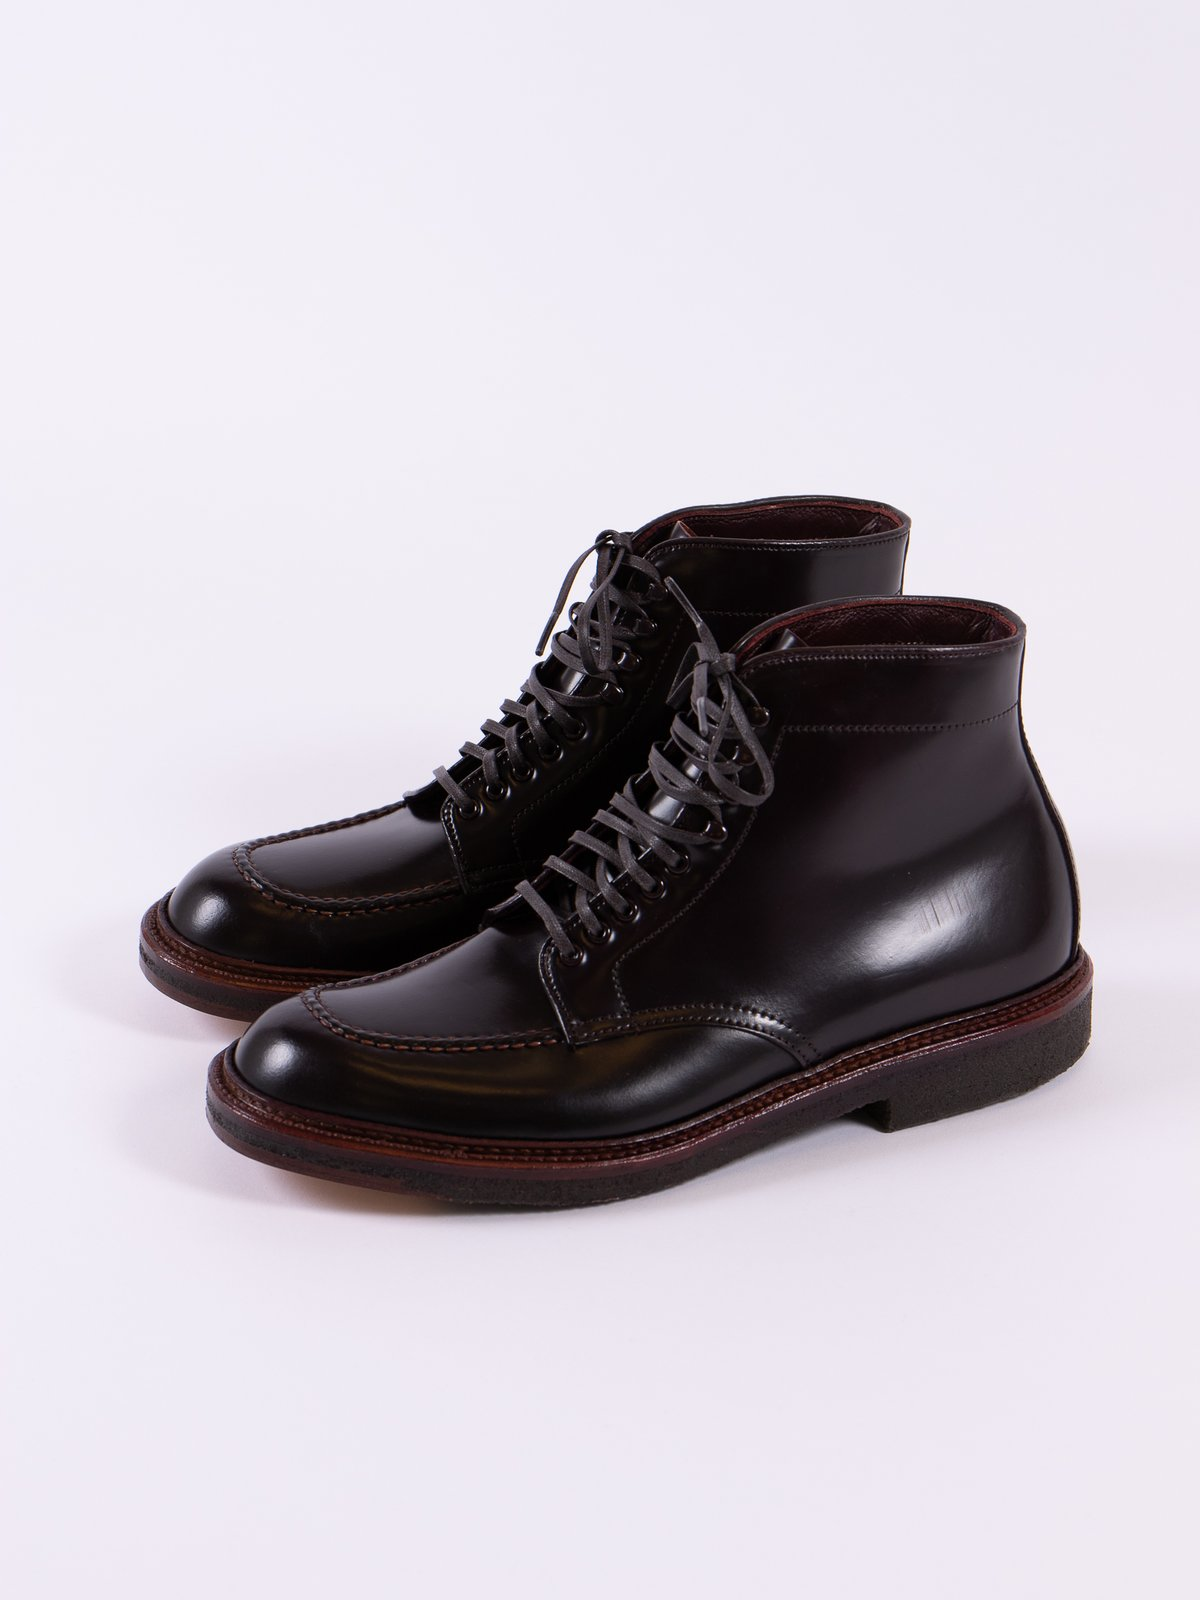 Color 8 Cordovan Indy Boot - Image 2